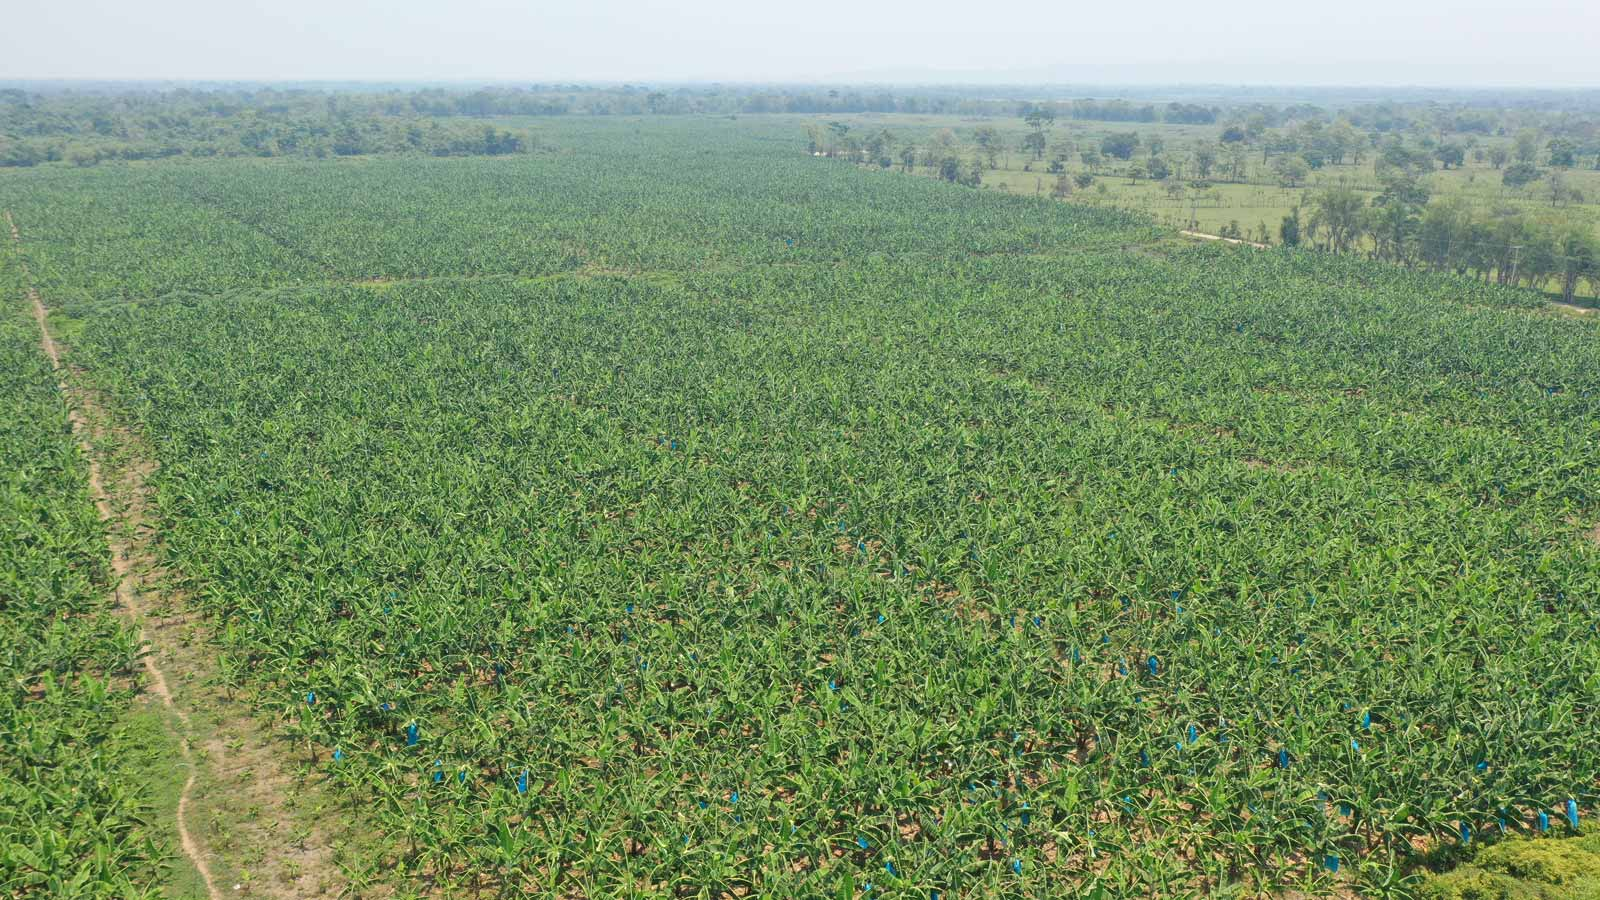 Pix4Dfields drone mapping for banana production in Mexico